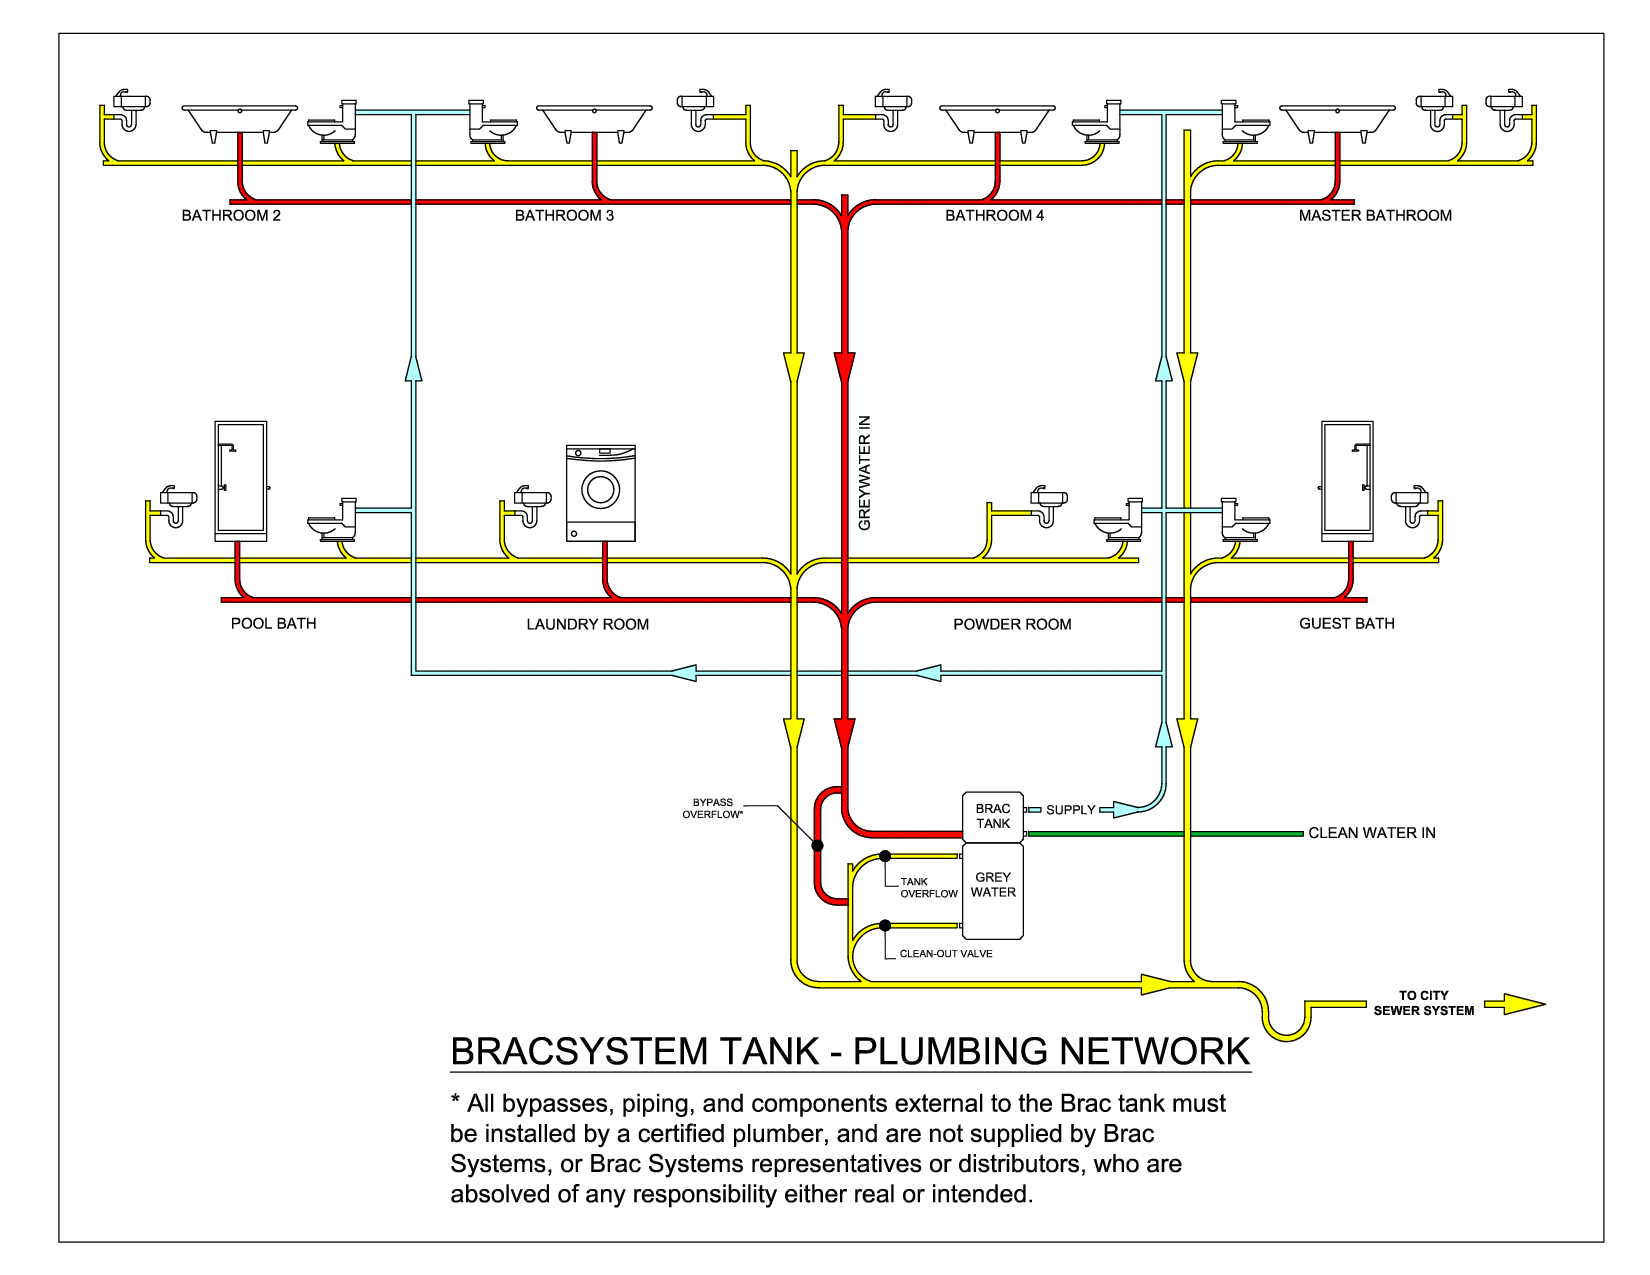 Mobile home plumbing systems plumbing network diagram for Plumbing schematic